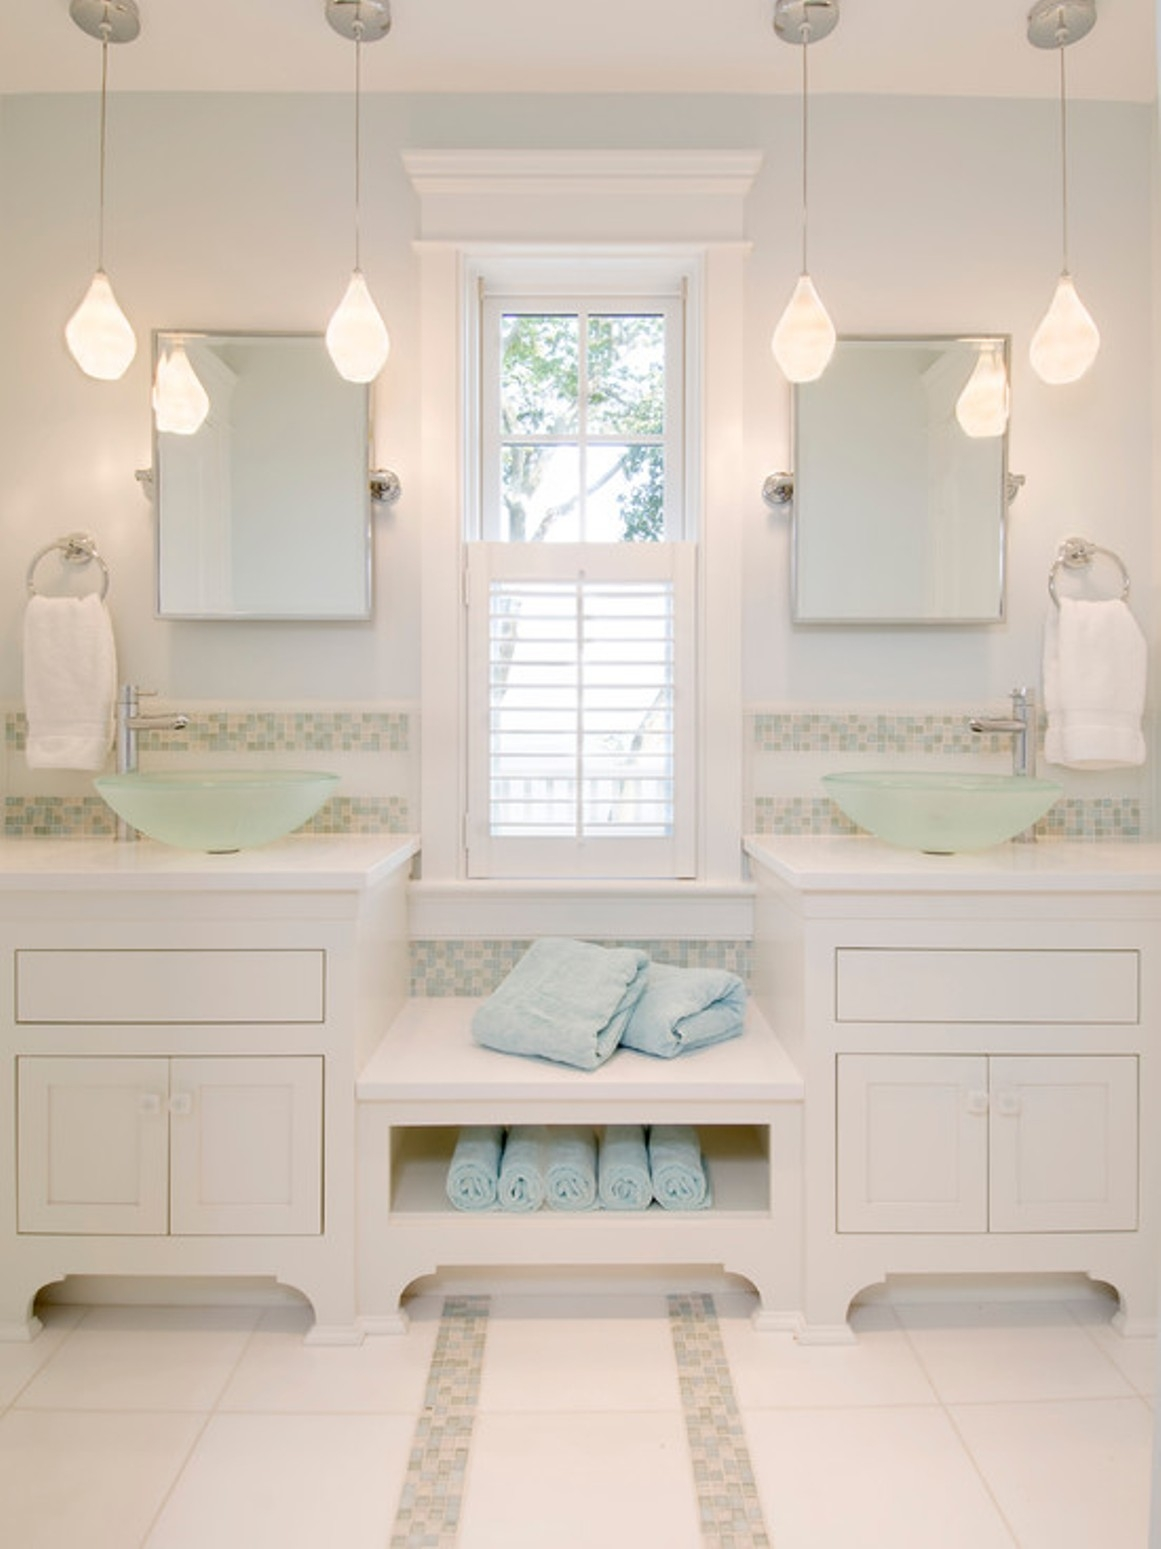 Awesome Modern Bathroom Chandeliers Contemporary Best Bathroom Inside Modern Bathroom Chandeliers (View 6 of 15)